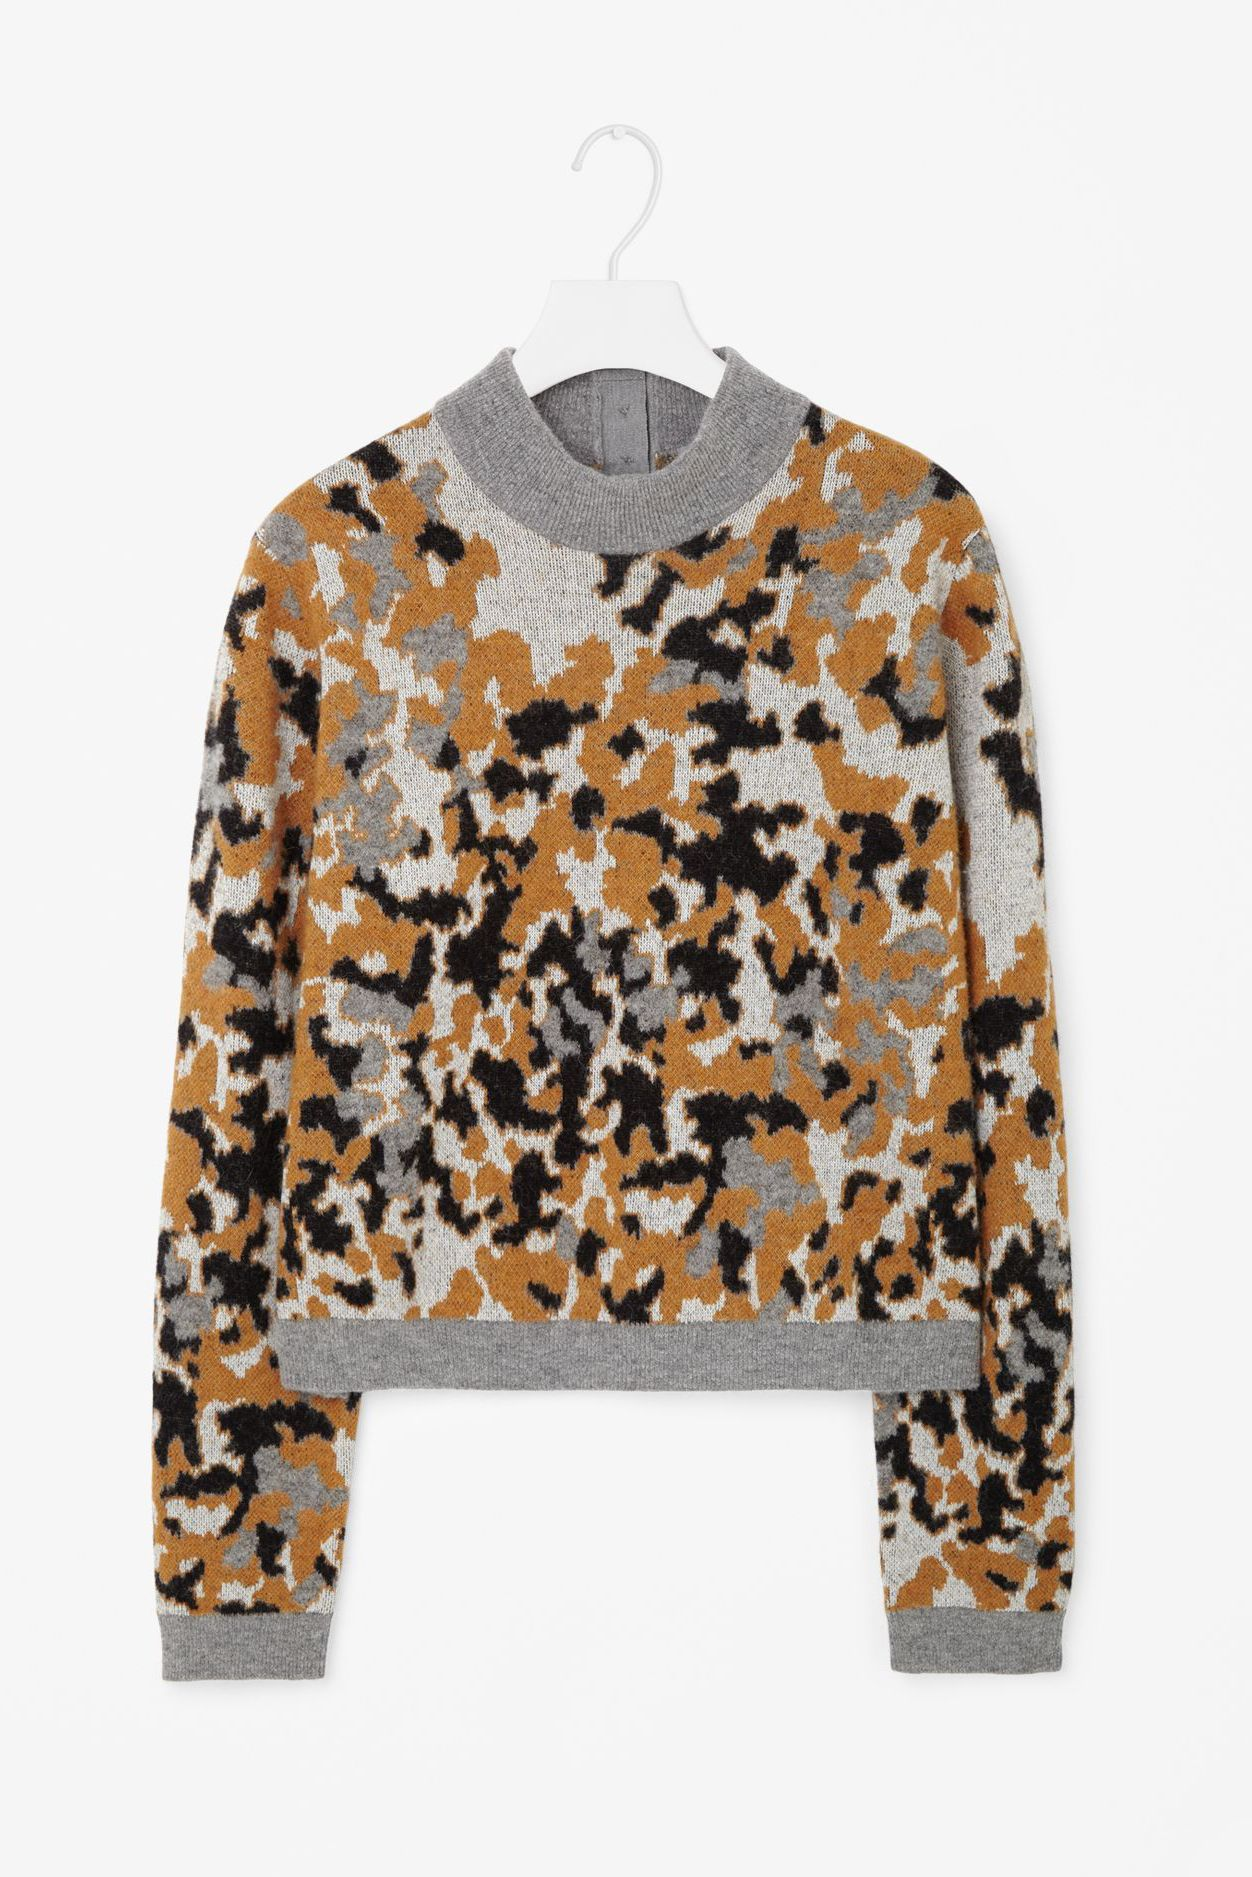 Mottled print jumper from COS